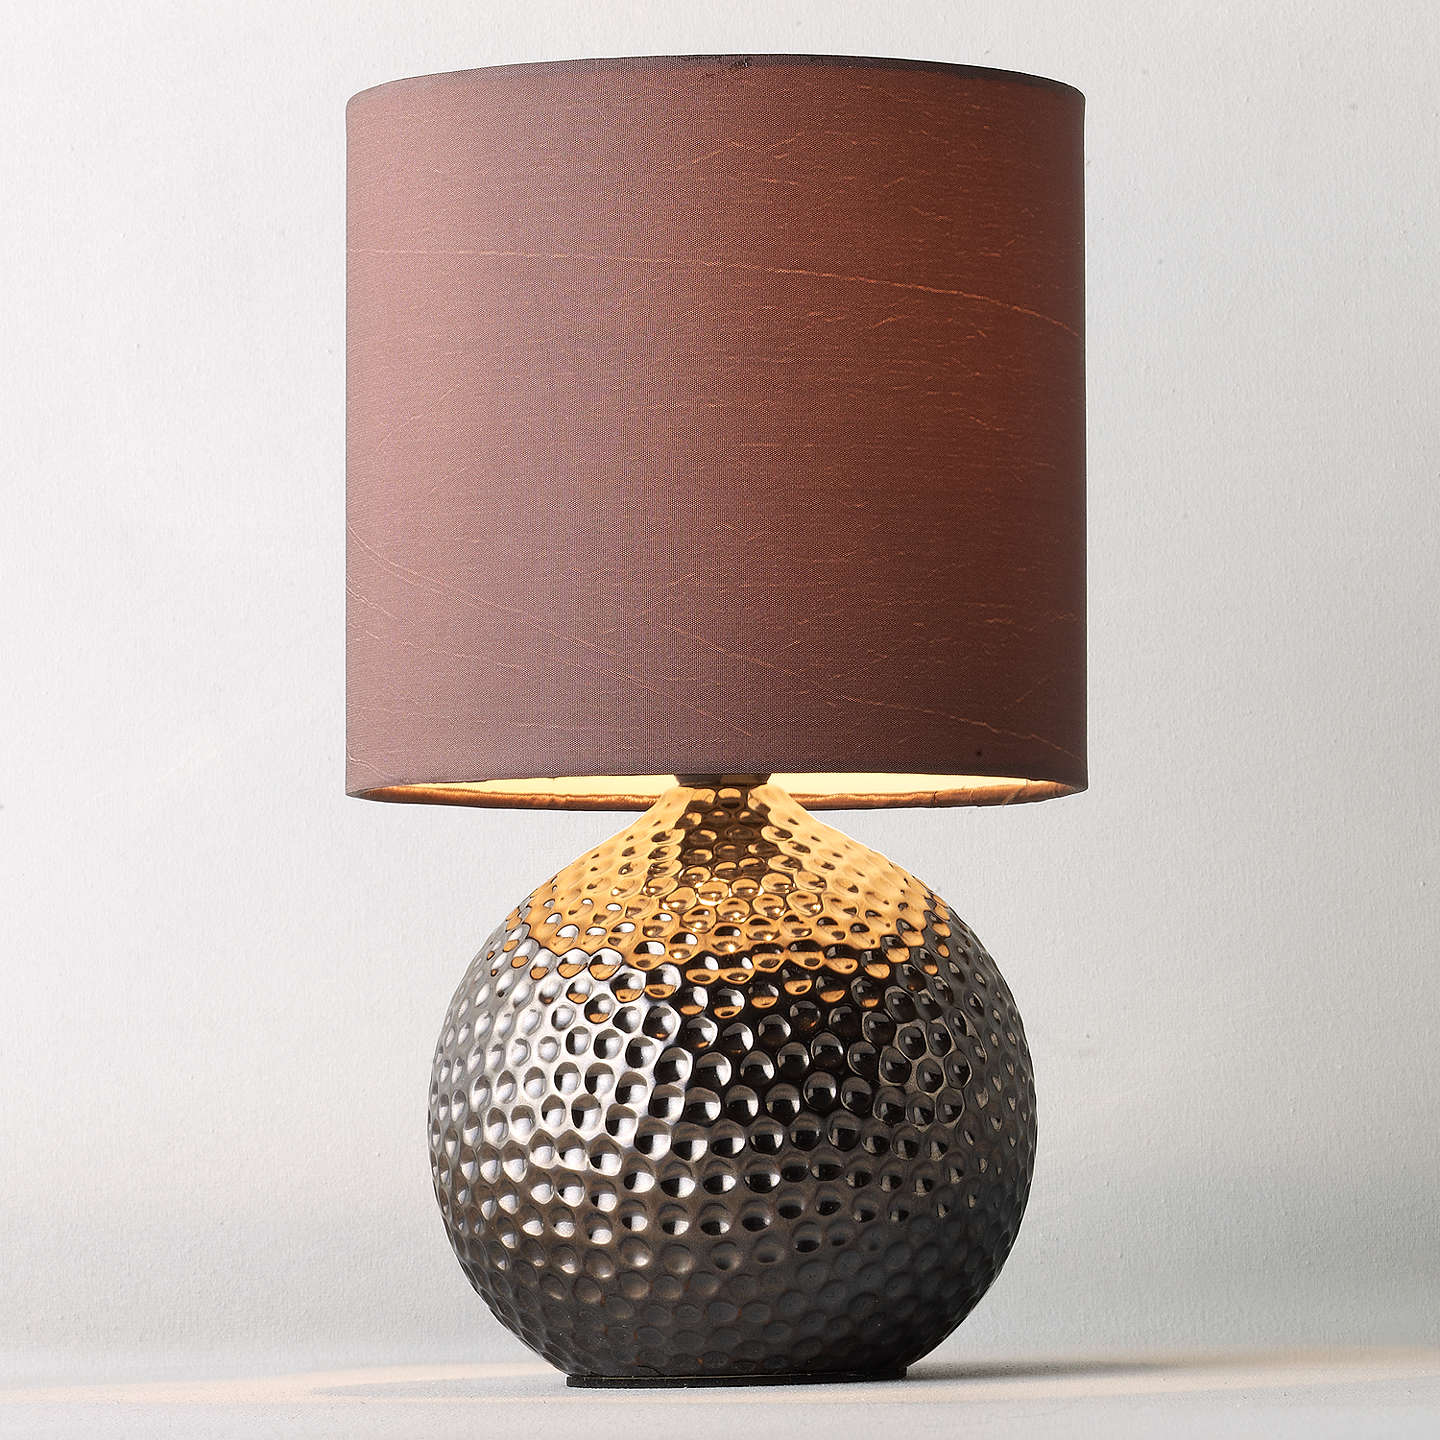 John lewis alisa table lamp bronze at john lewis buyjohn lewis alisa table lamp bronze online at johnlewis aloadofball Gallery